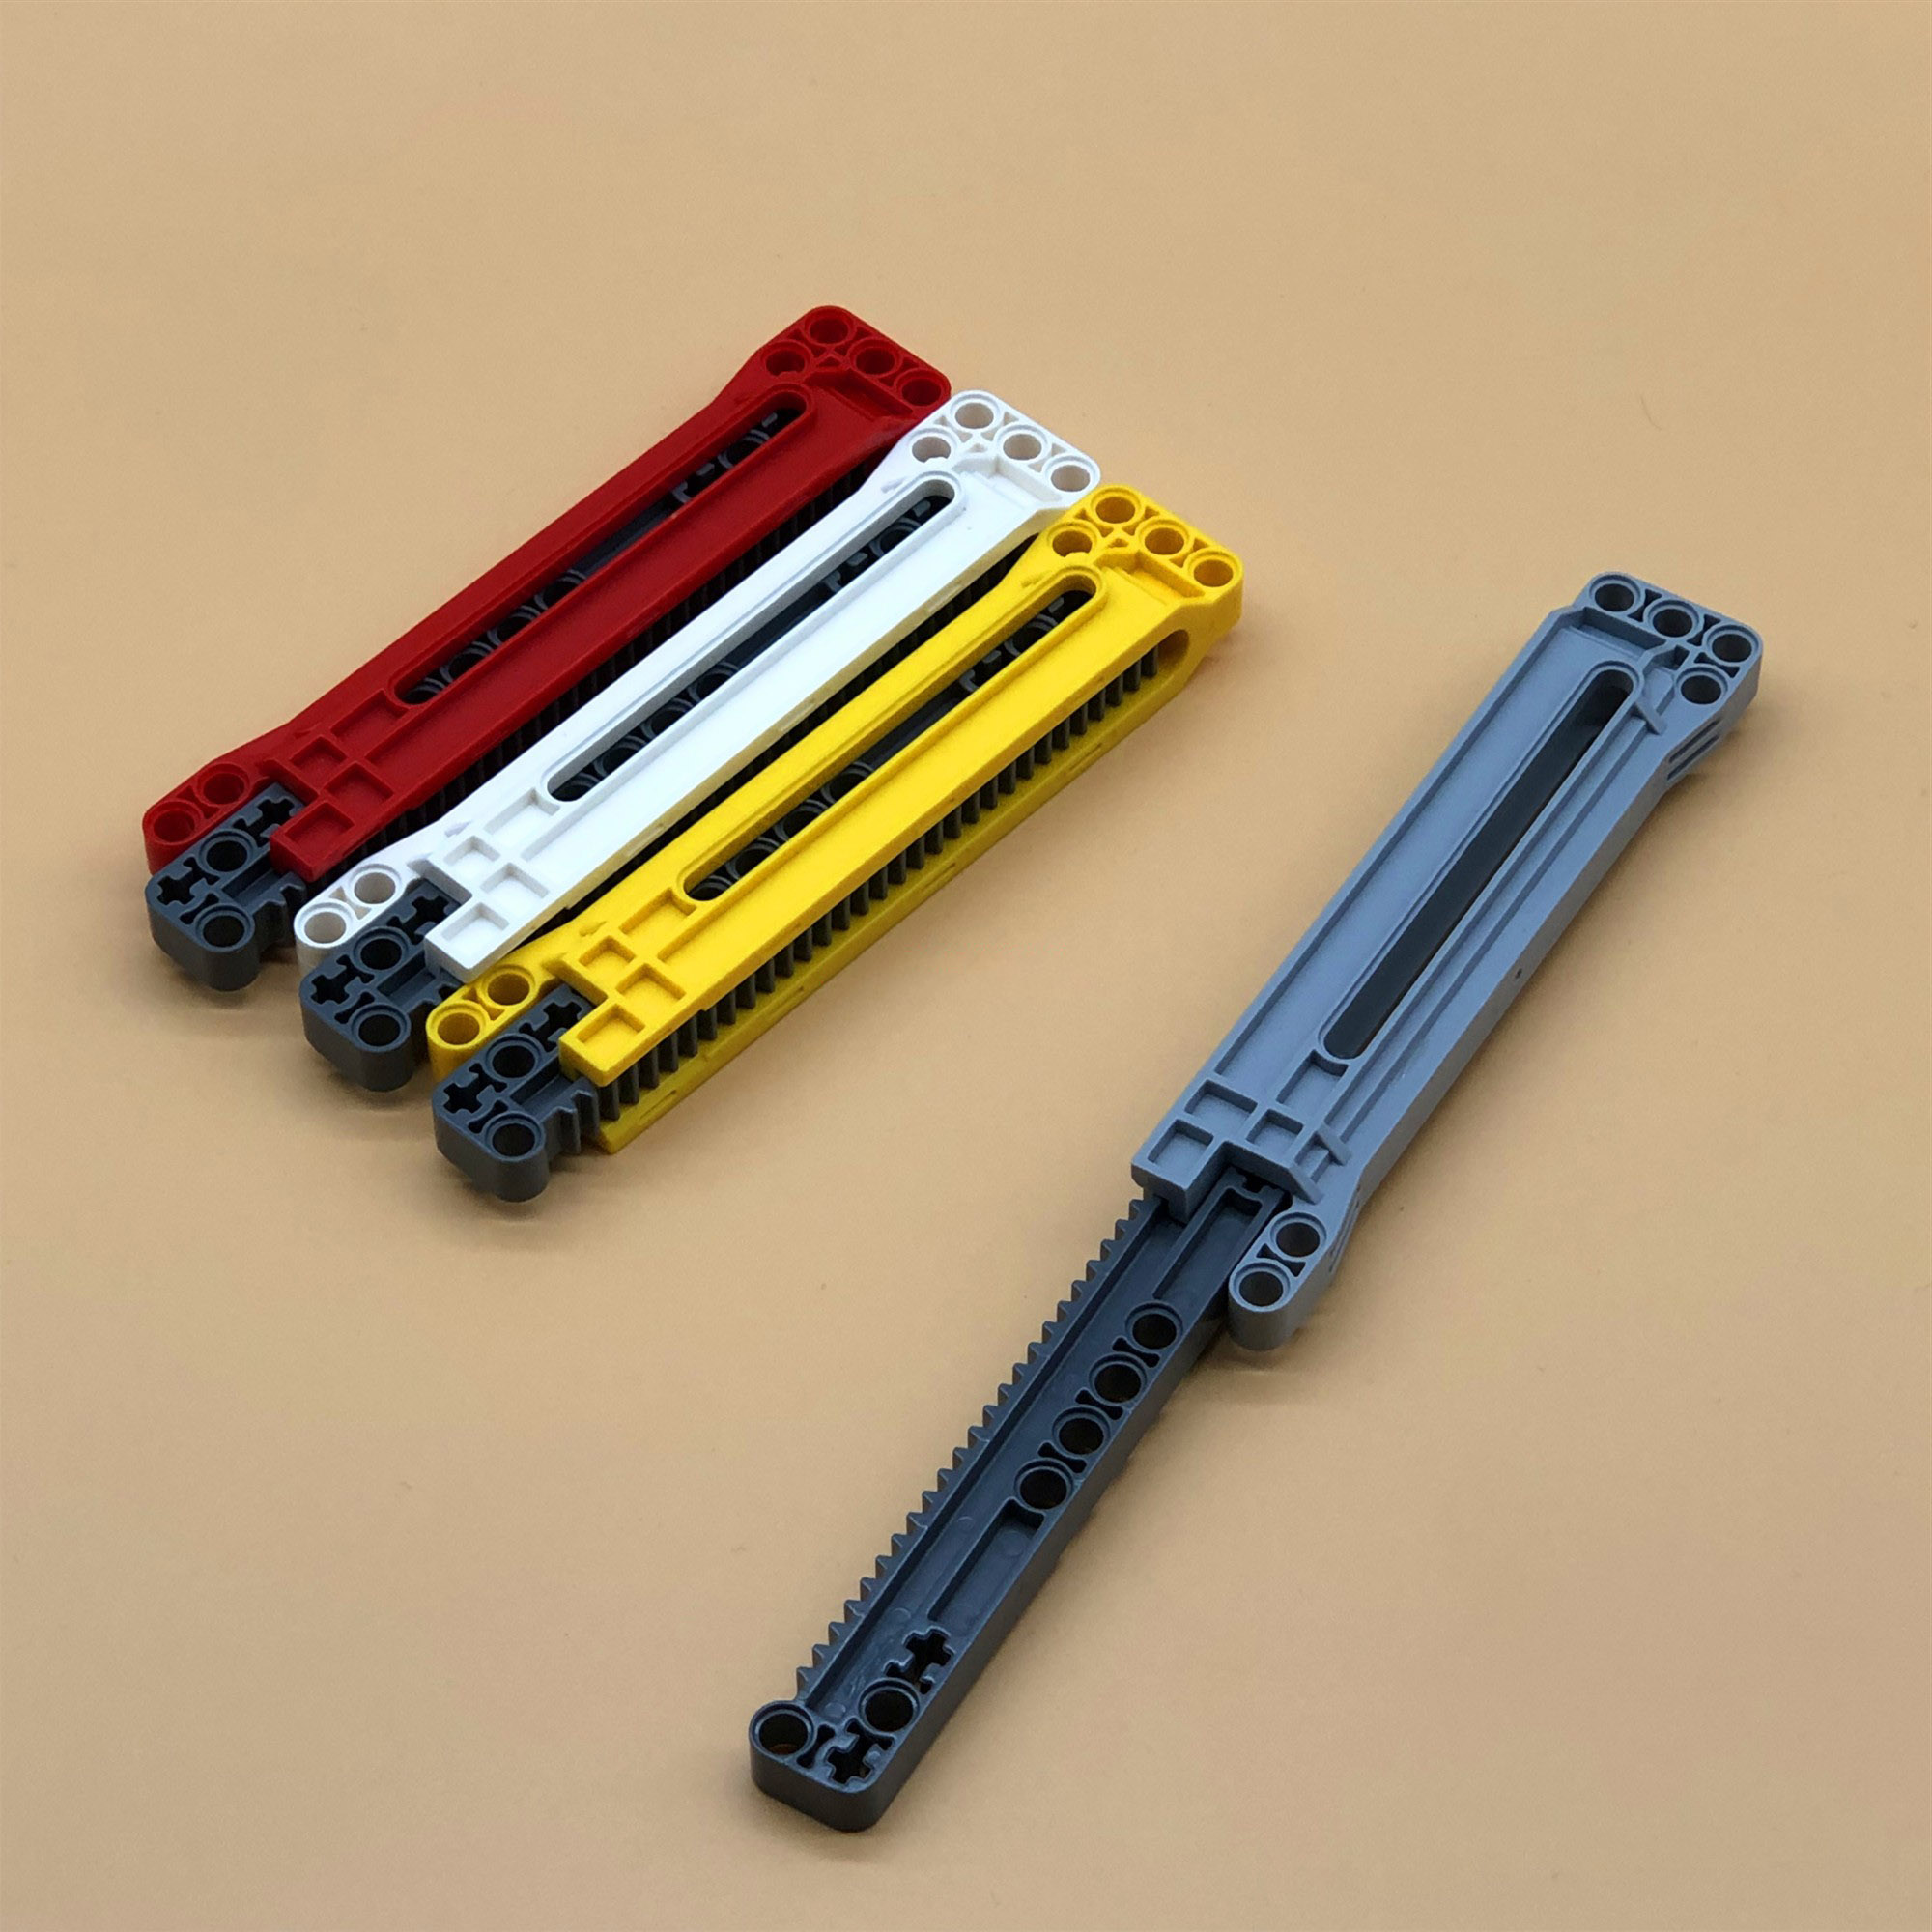 1 Set Compatible with <font><b>LEGOs</b></font> <font><b>Technic</b></font> Parts Gear Rack 1x14x2 with Axle and Pin Holes Housing Combination Bricks Blocks DIY Toys image